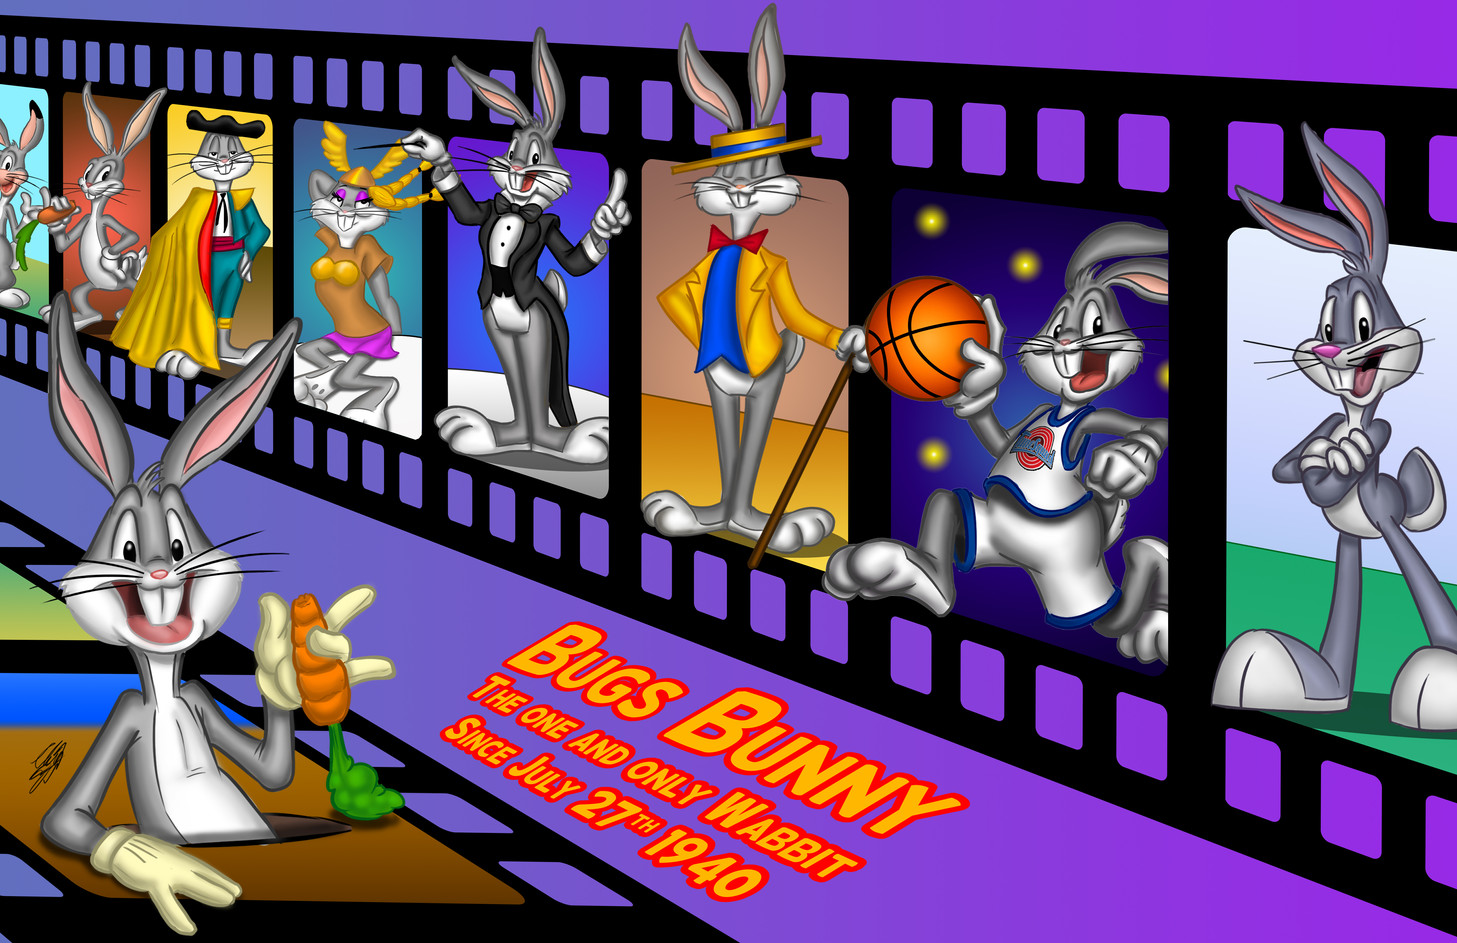 Bugs Bunny 80th (July 2020)